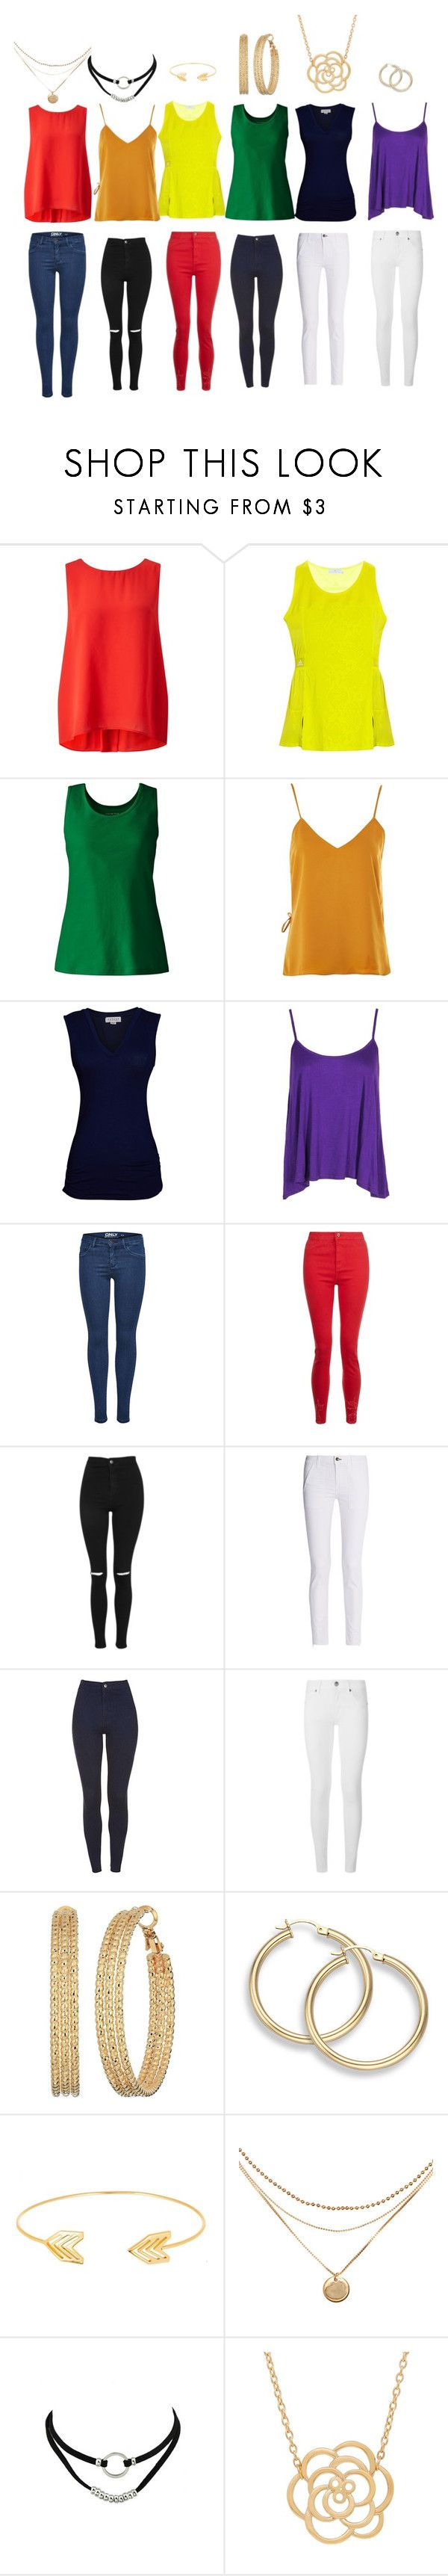 """""""Rainbow"""" by gamerskitchenofficial on Polyvore featuring Somerset by Alice Temperley, adidas, Lands' End, WYLDR, Velvet by Graham & Spencer, Boohoo, Topshop, rag & bone, Burberry and GUESS"""